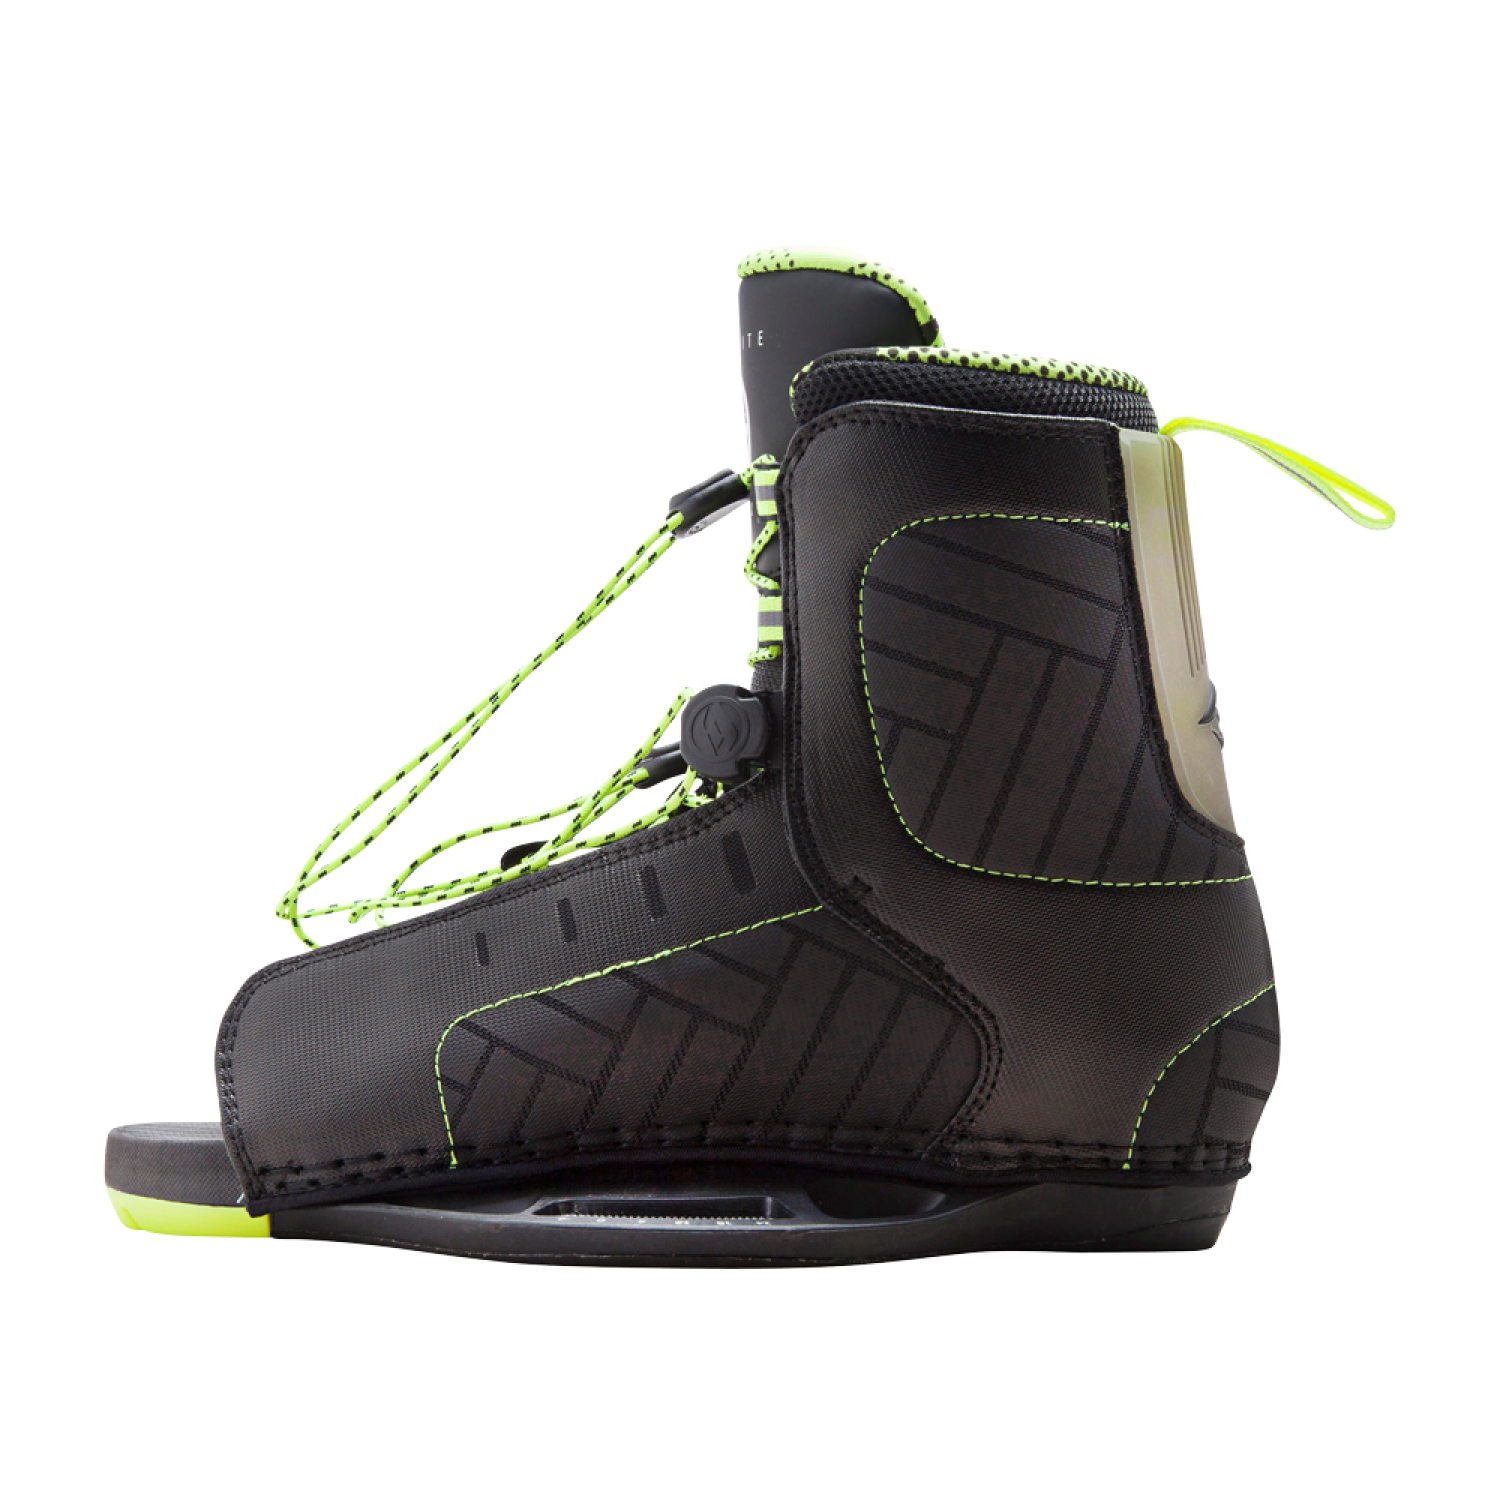 2018 Hyperlite REMIX Boots/Bindings - Guys